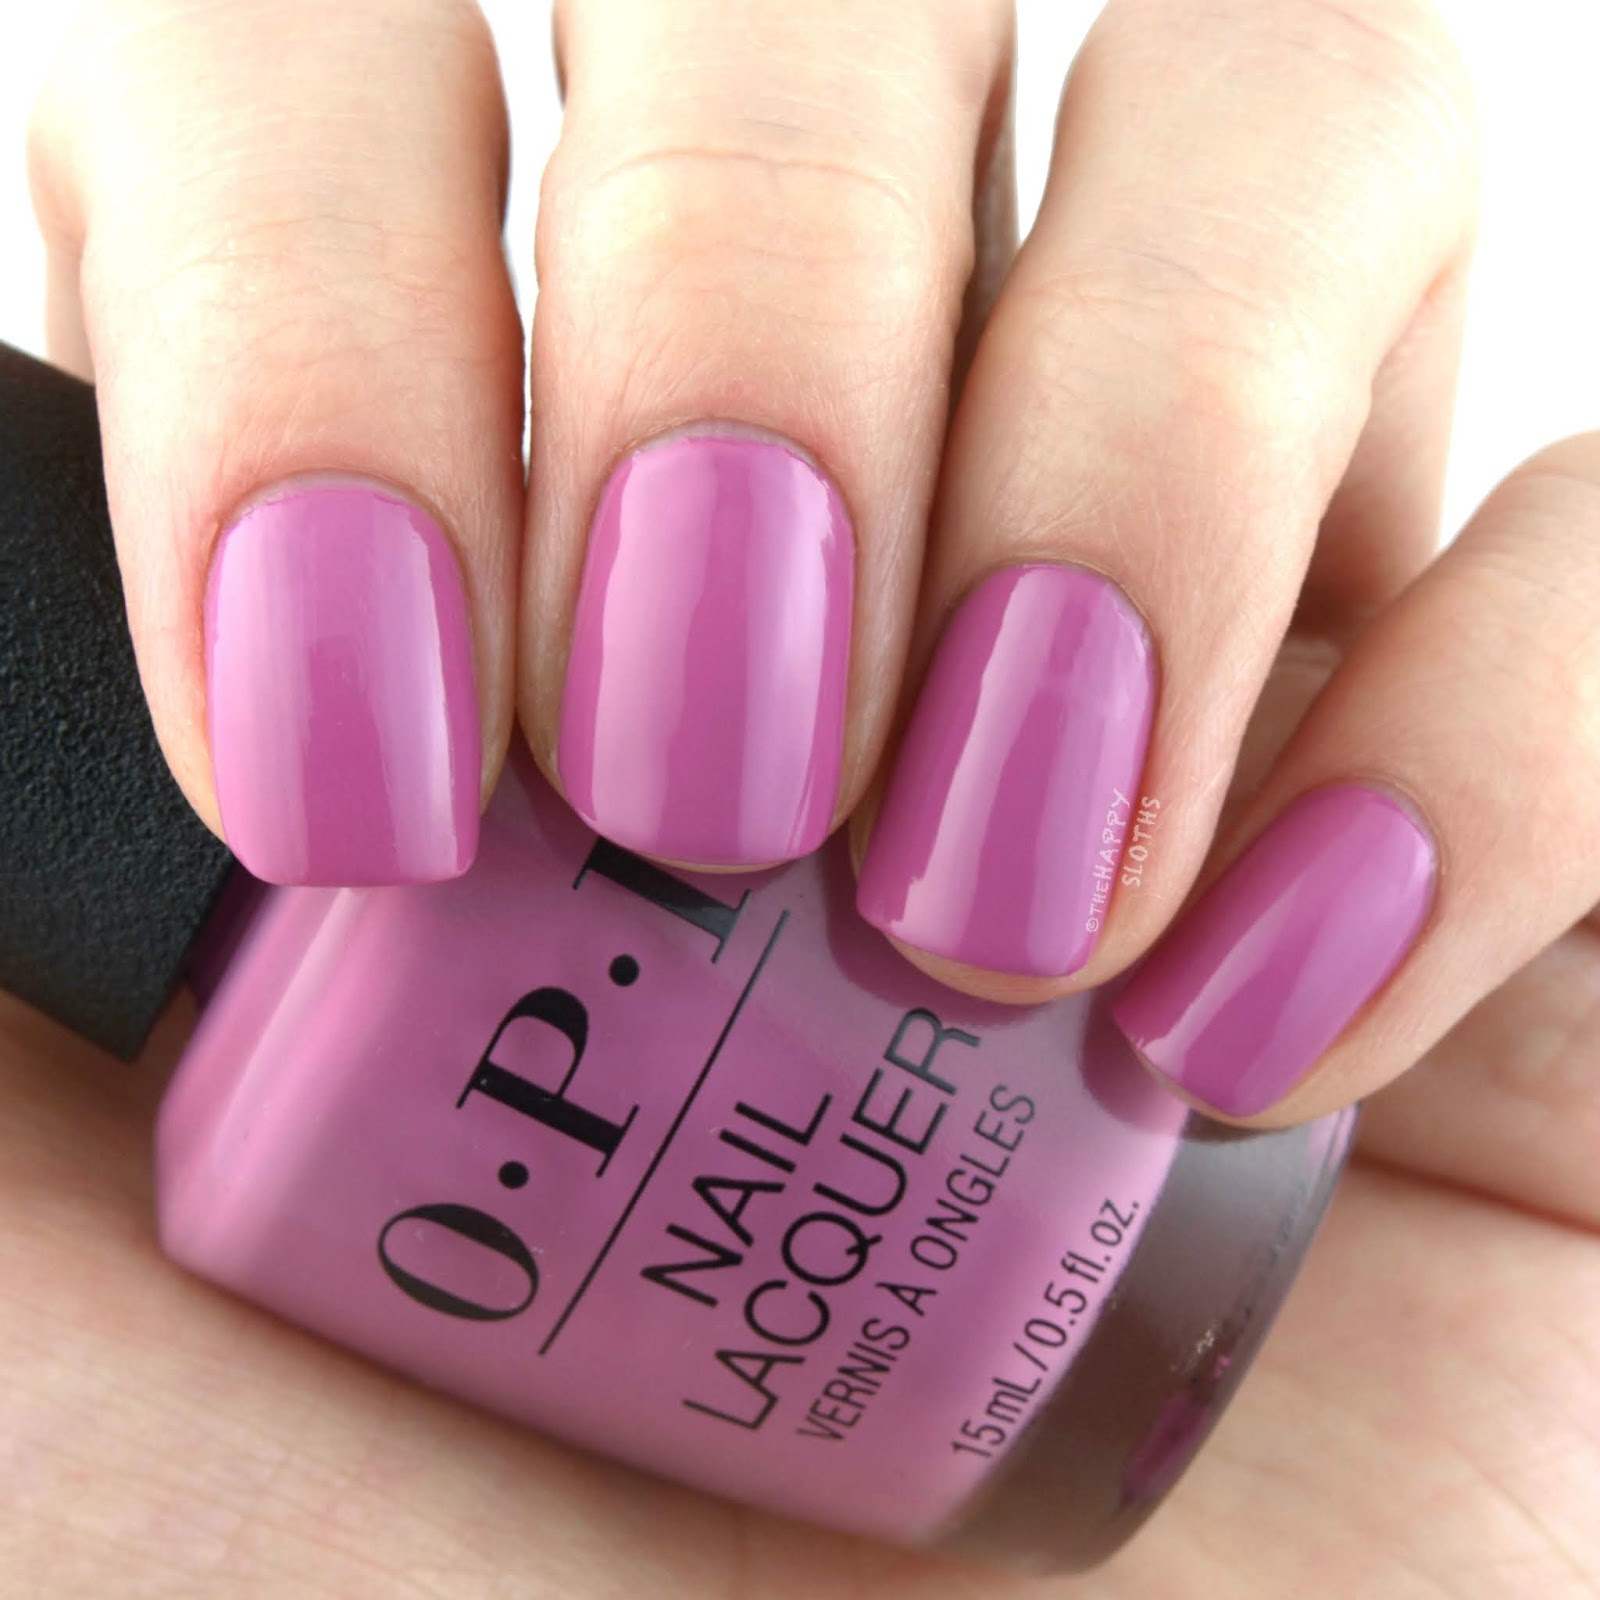 OPI Spring 2019 Tokyo Collection | Arigato from Tokyo: Review and Swatches